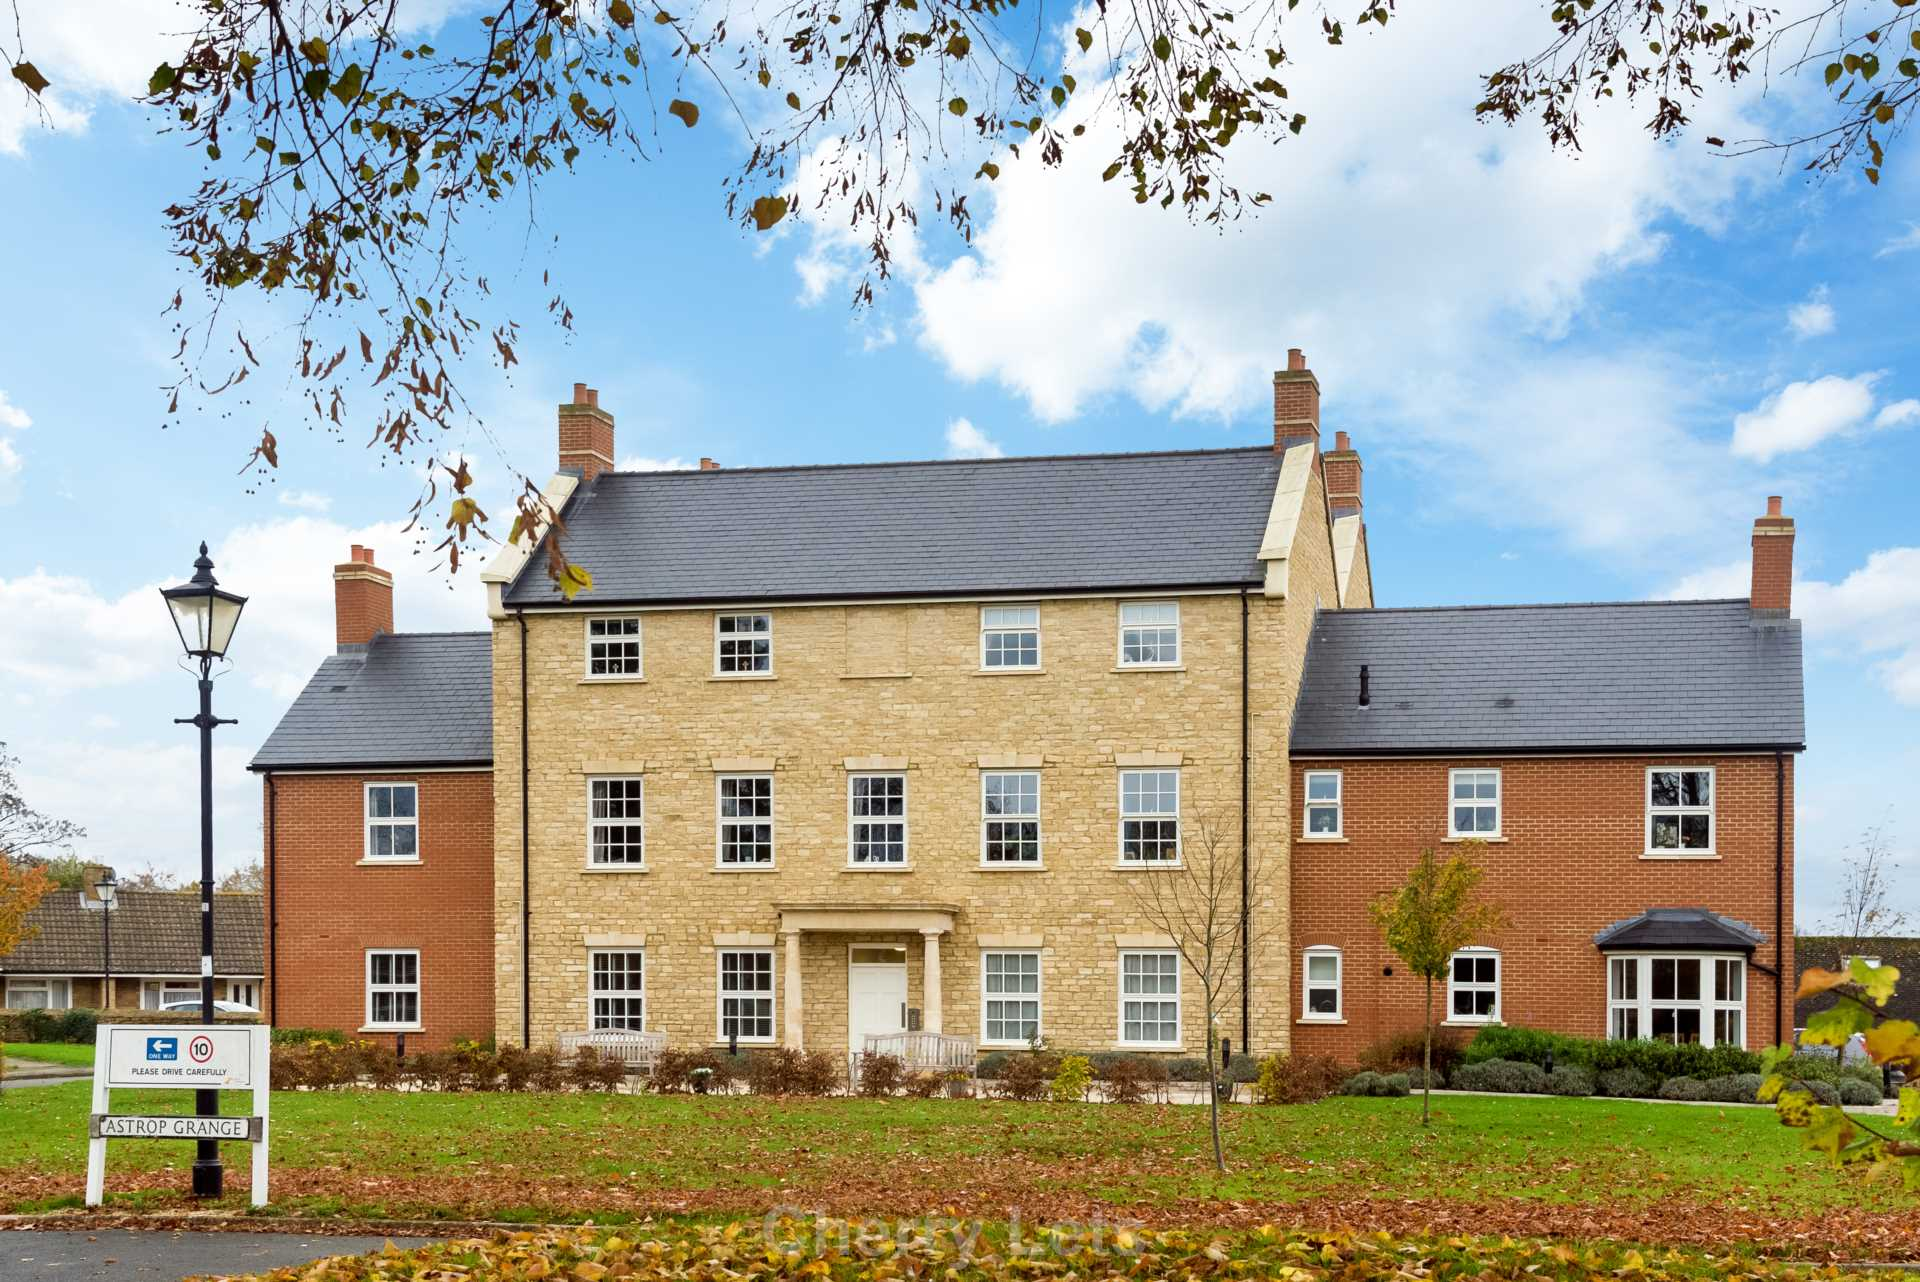 2 bed apartment to rent in Astrop Grange, Kings Sutton, OX17 12